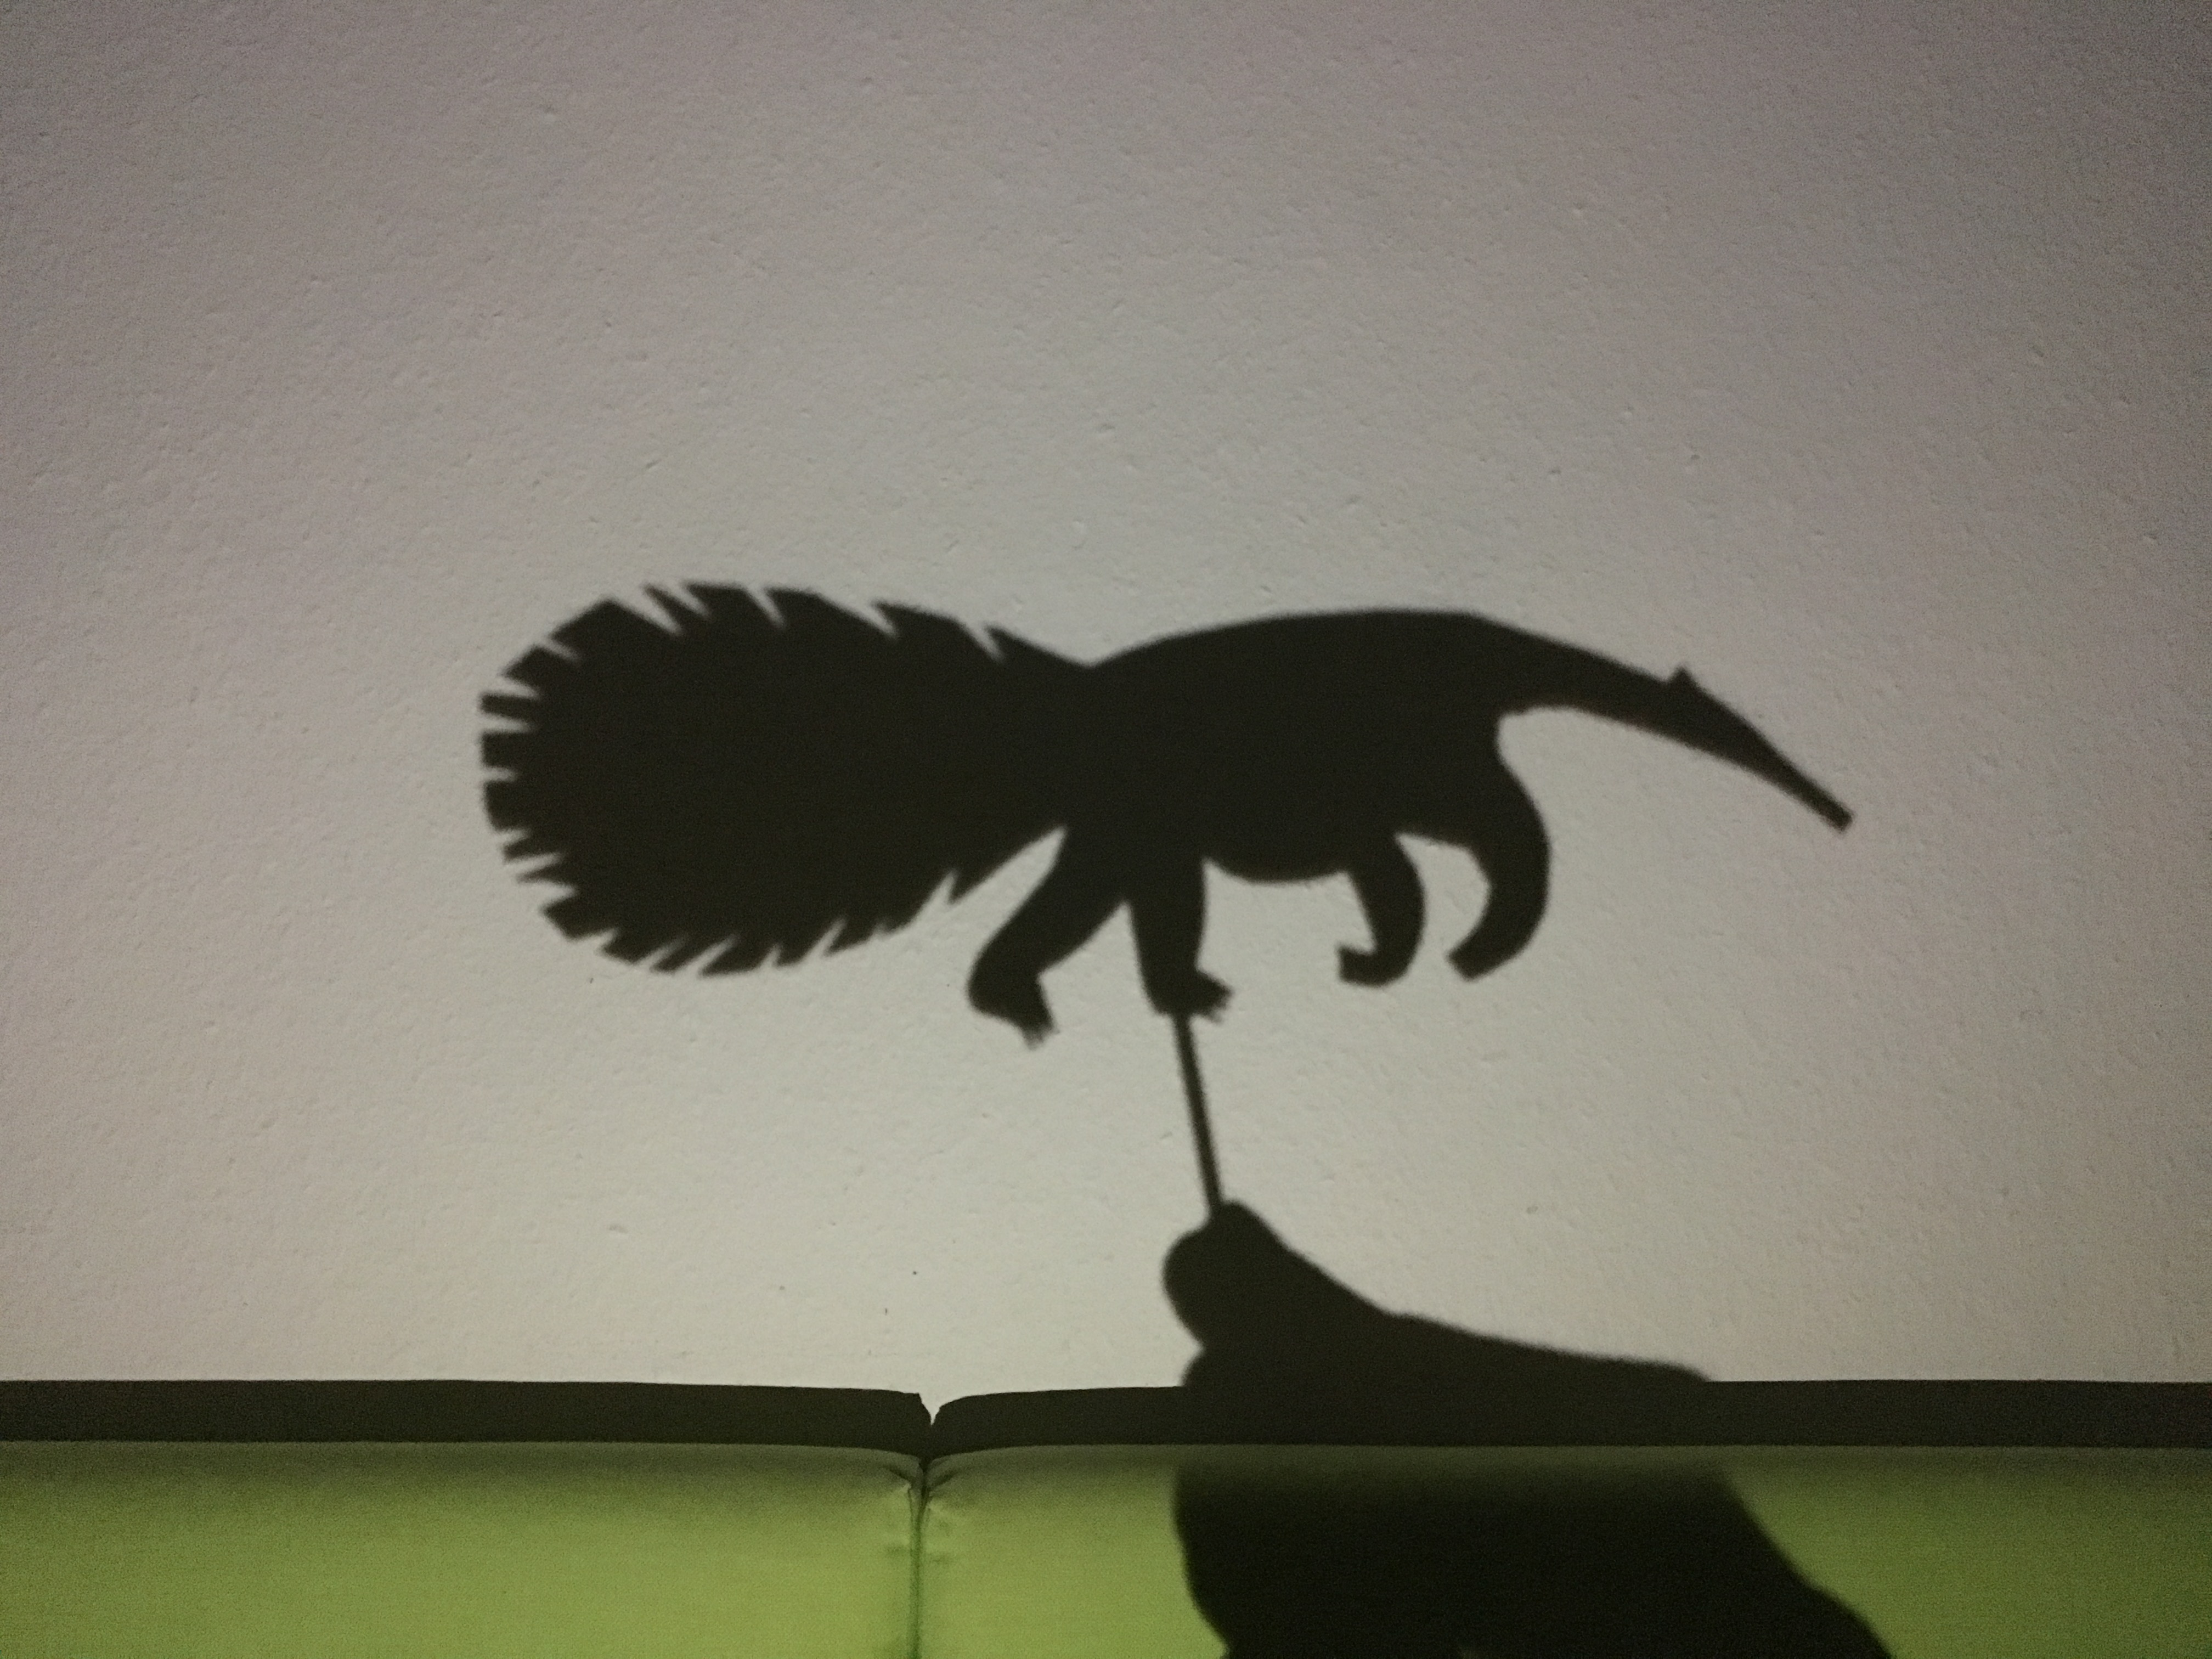 Shadow play - anteater